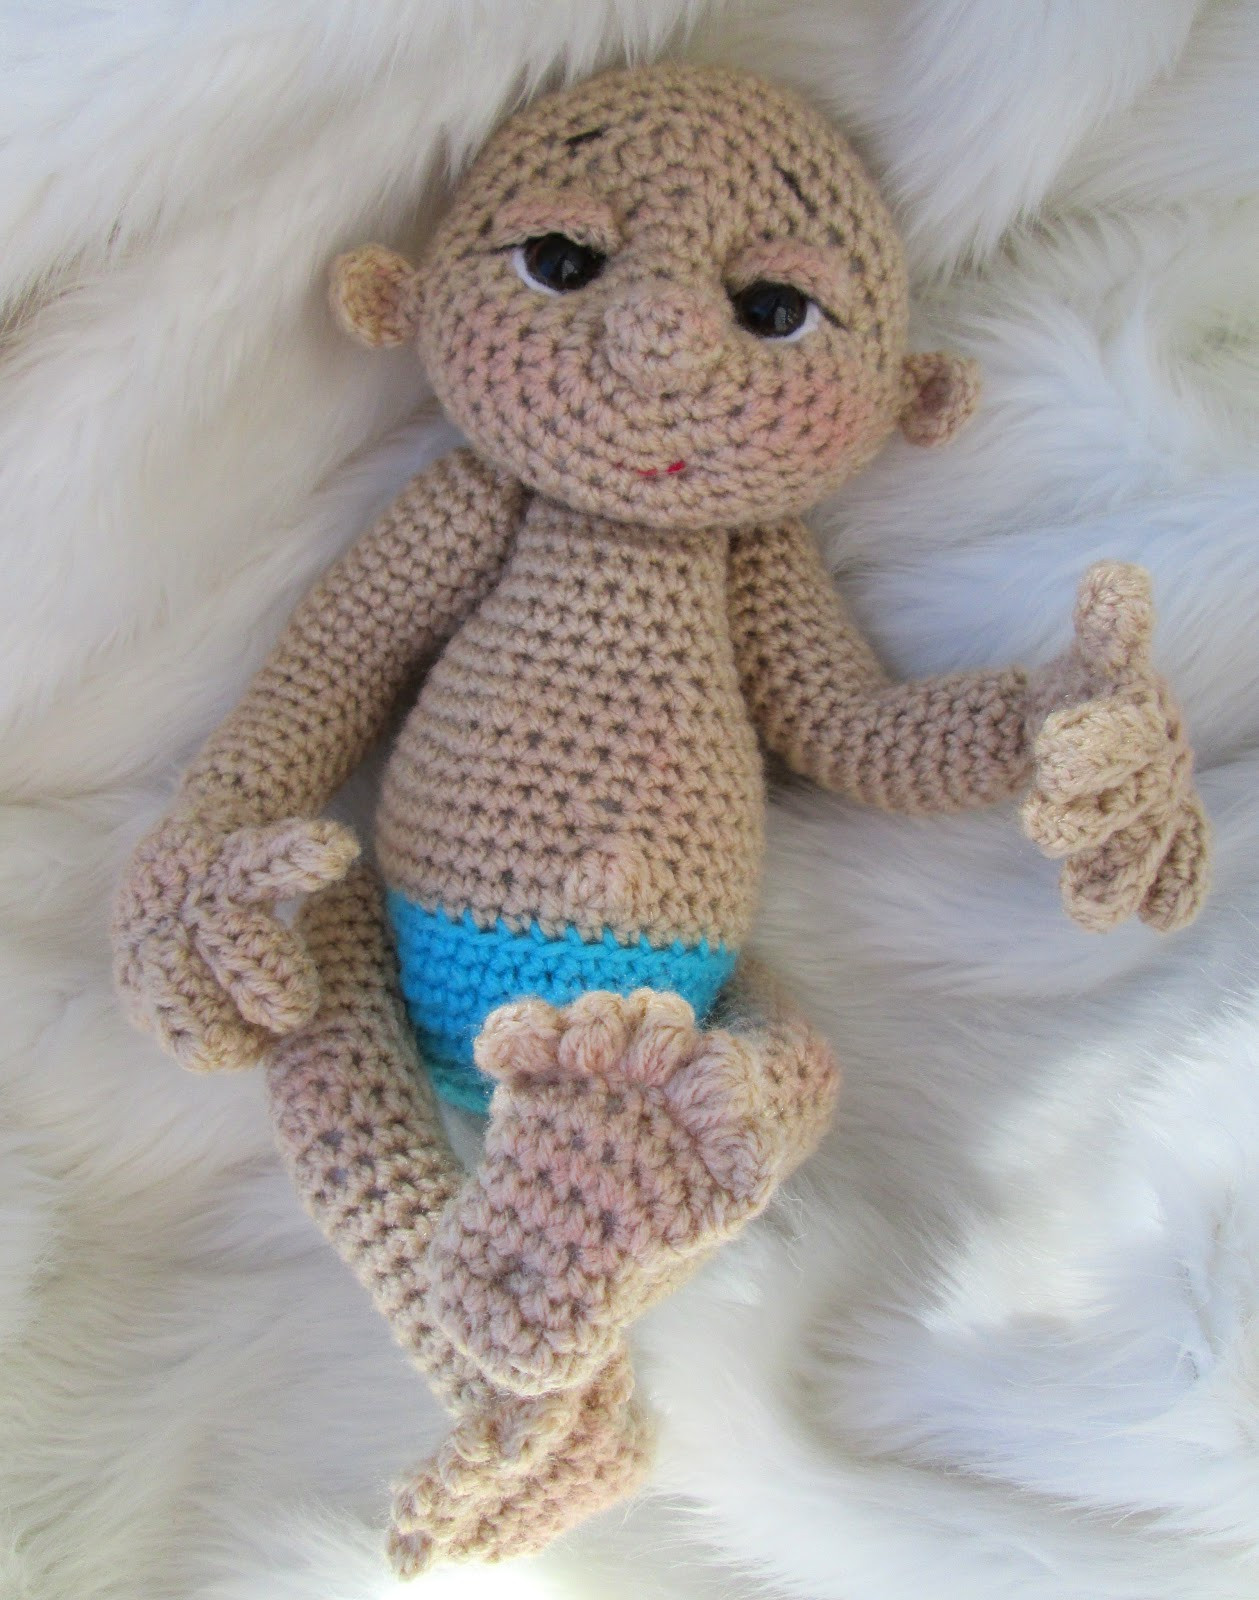 Crochet Baby Doll Pattern Beautiful Teri S Blog Tutorials Jointing Needle Scultping Stitch Of Amazing 40 Pics Crochet Baby Doll Pattern